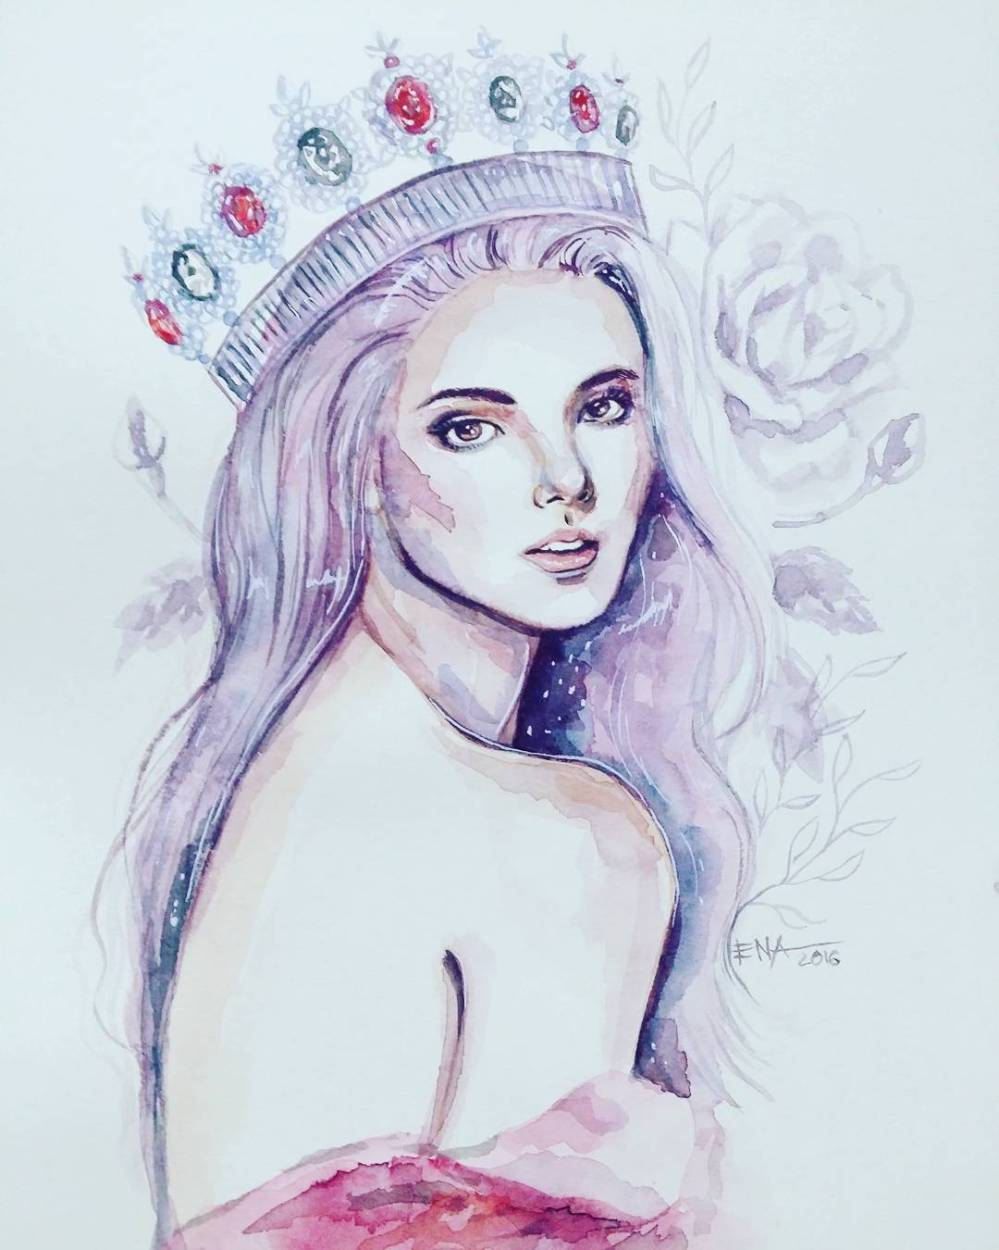 Miss World Philippines 2016 Catriona Gray Watercolor Fan Art